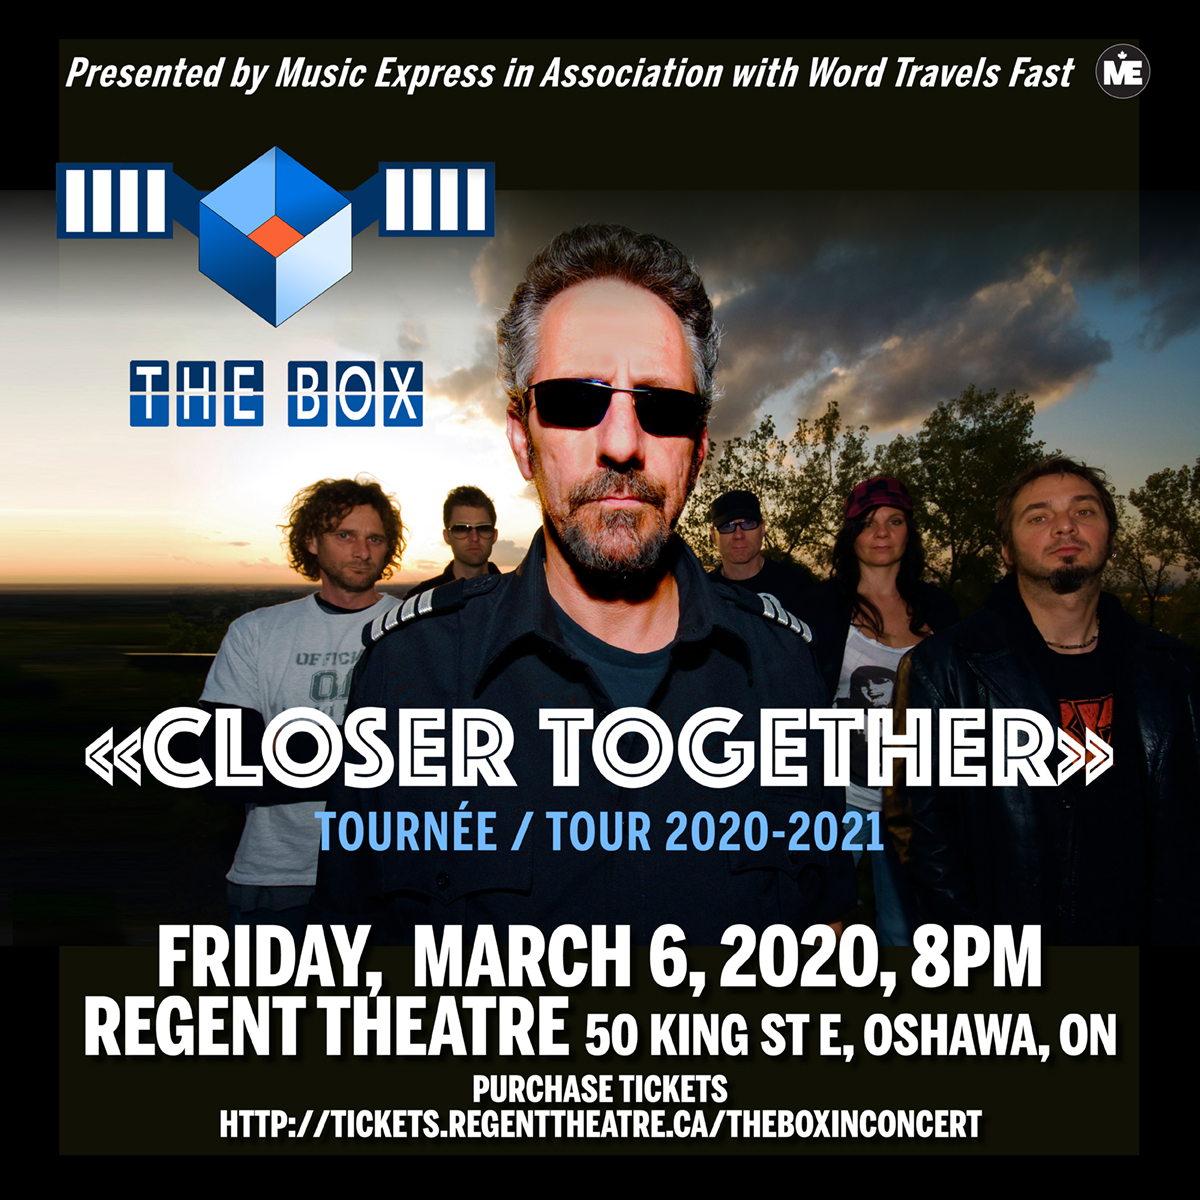 The Box perform at the historic Regent Theatre, Oshawa – Friday, March 6, 2020  8:00 PM